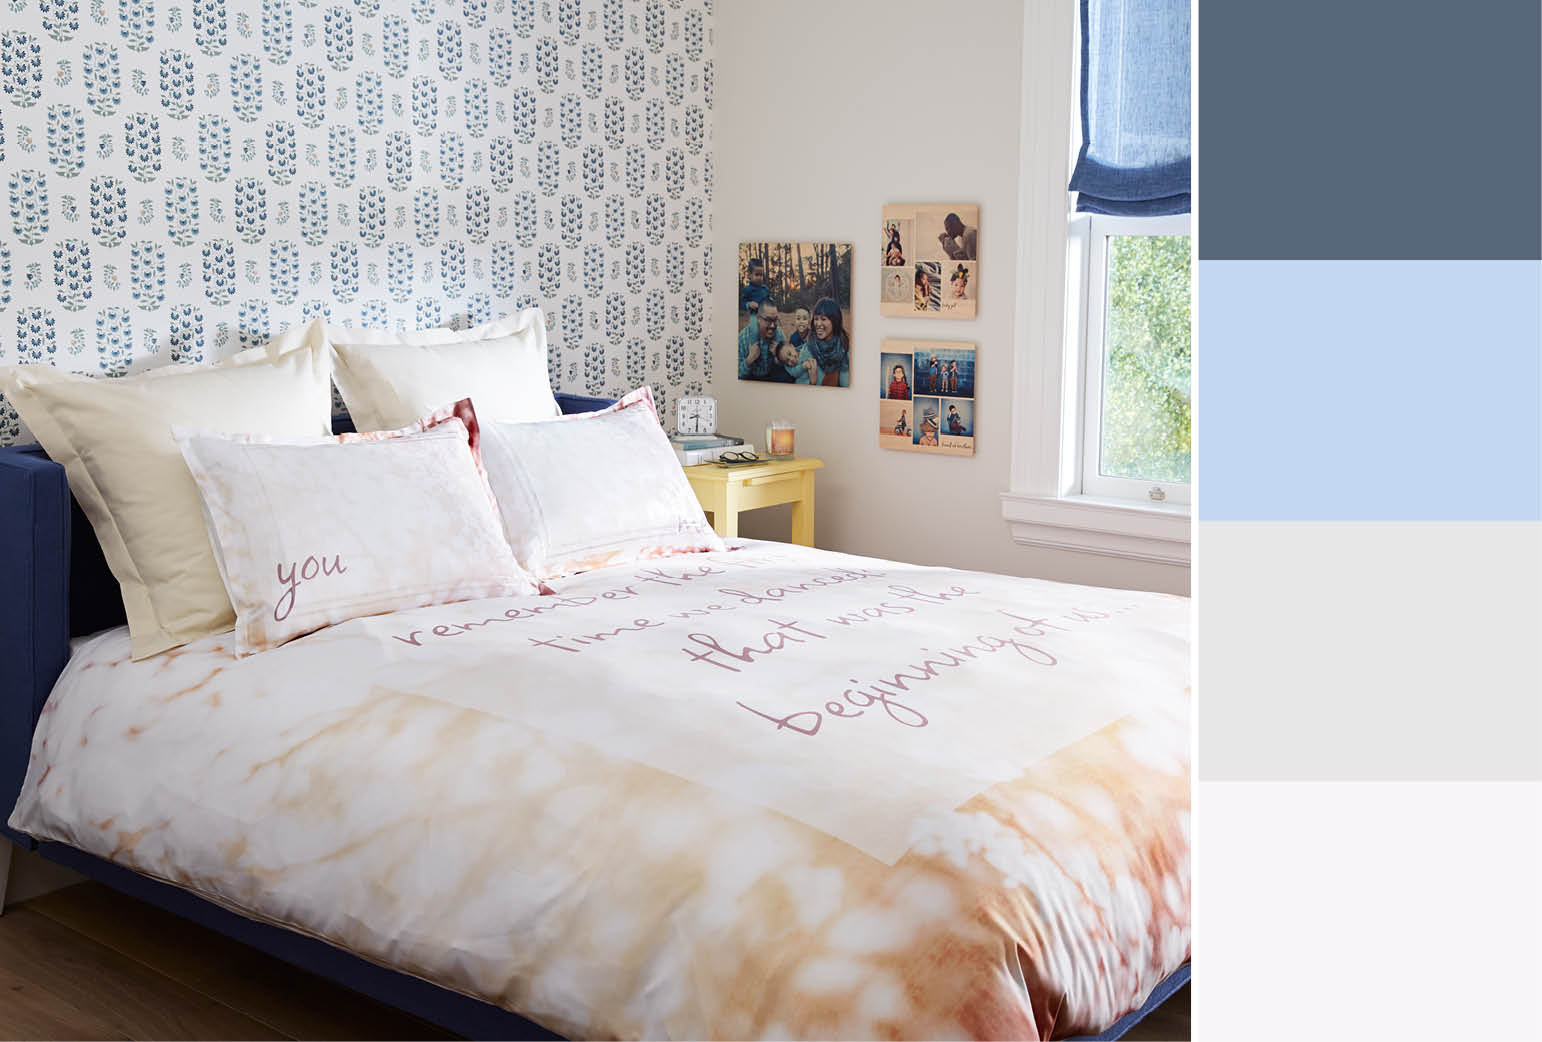 Blue Patterned Wallpaper - My Bedroom View With Quotes Of Music - HD Wallpaper